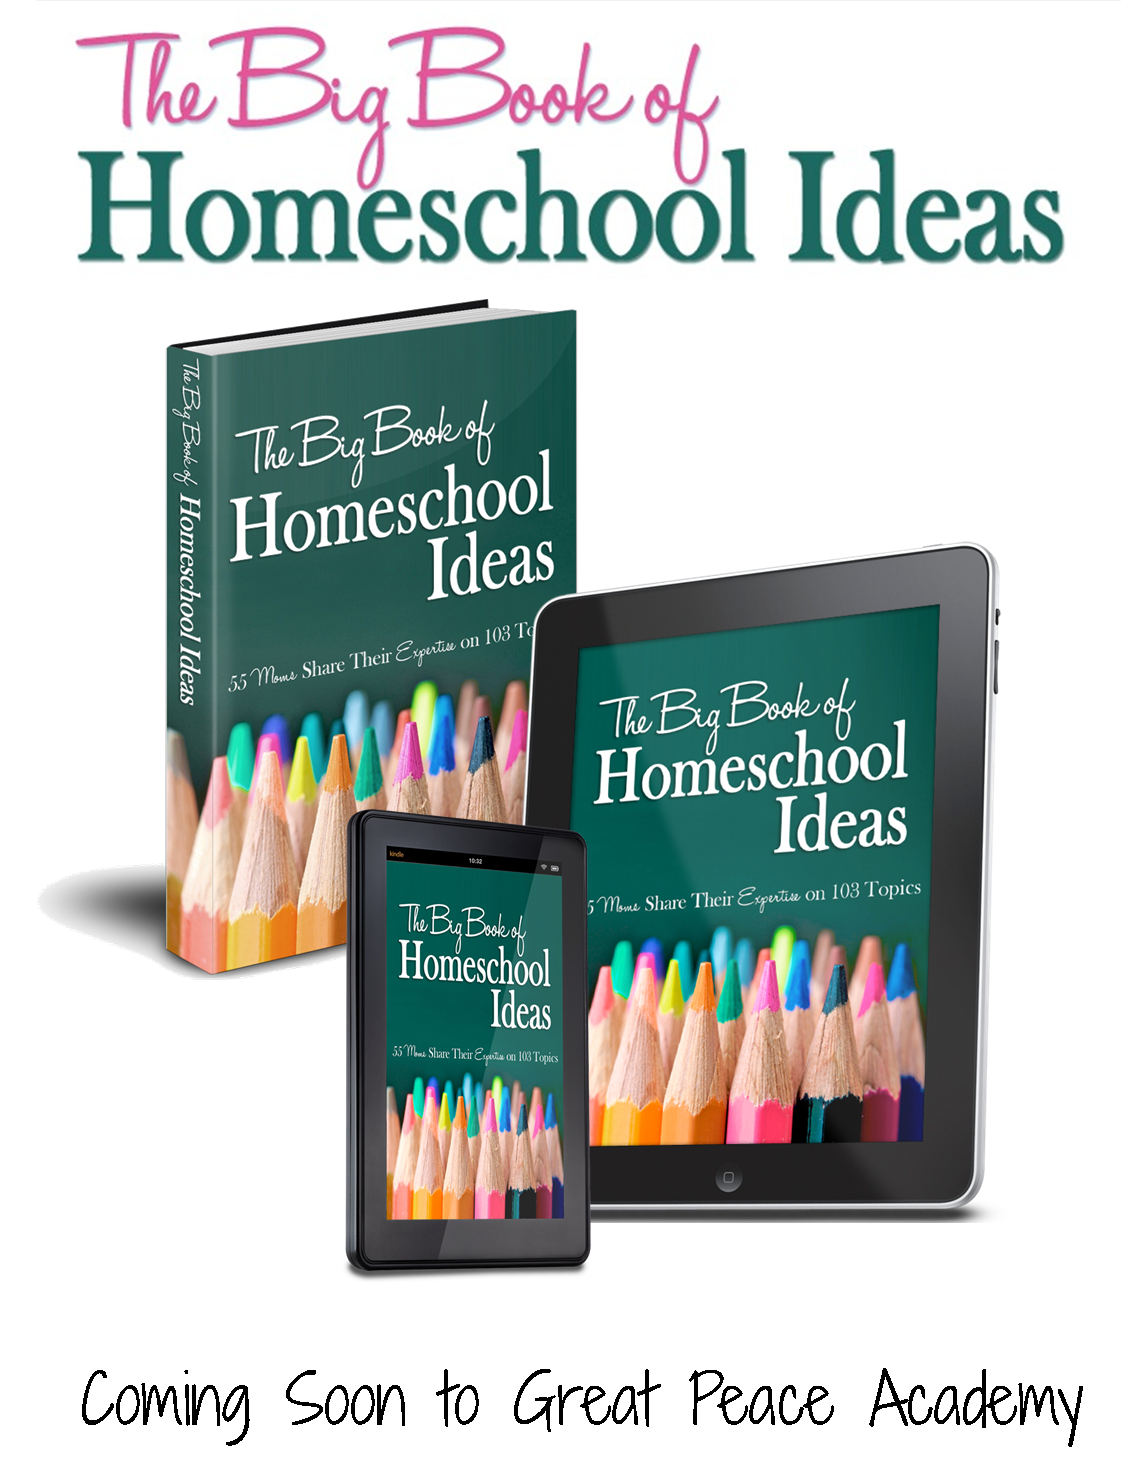 The Big Book of Homeshcool Ideas. Find it at Great Peace Academy